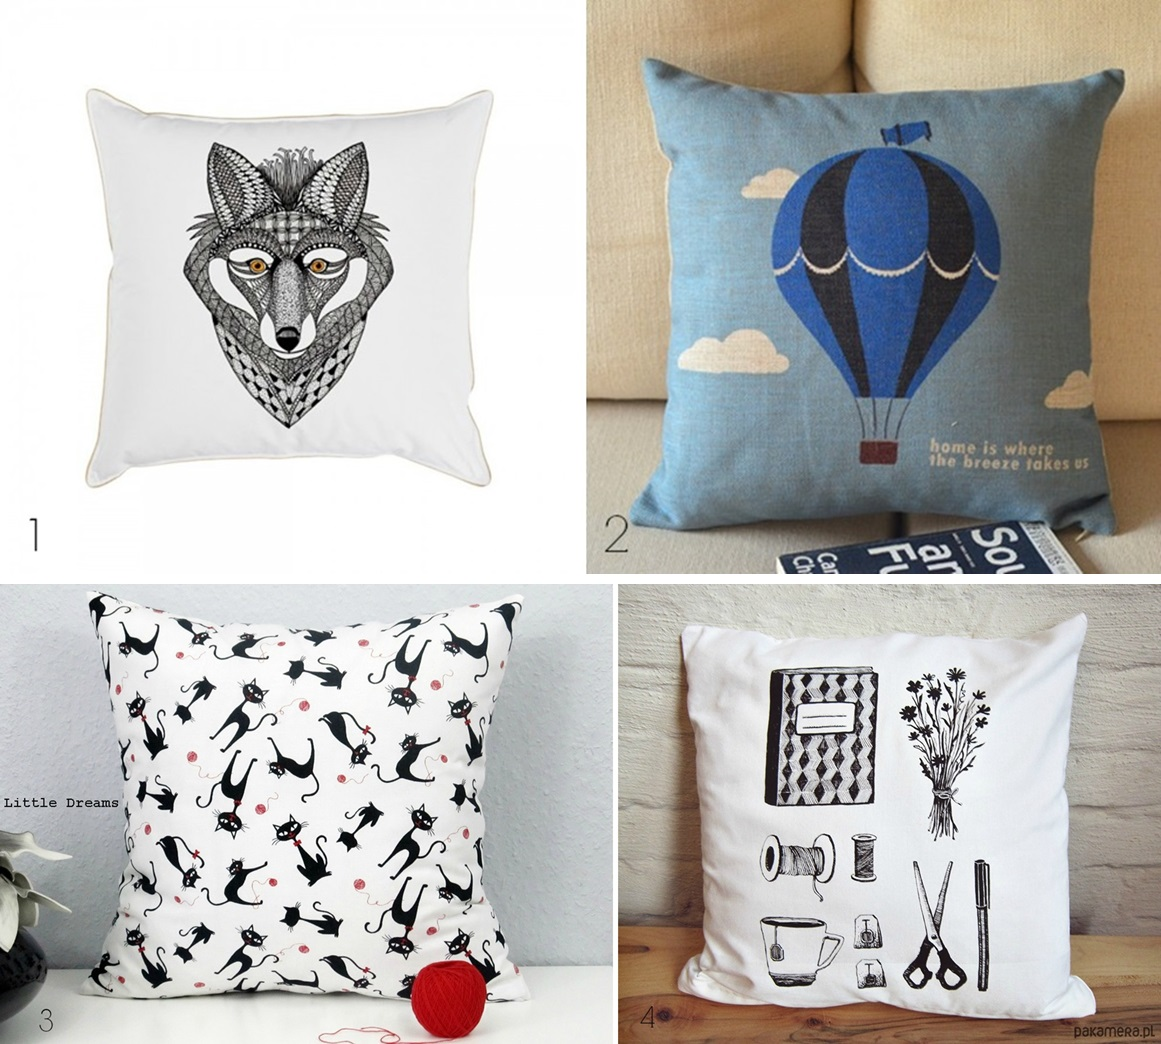 1. In love with - pillows.